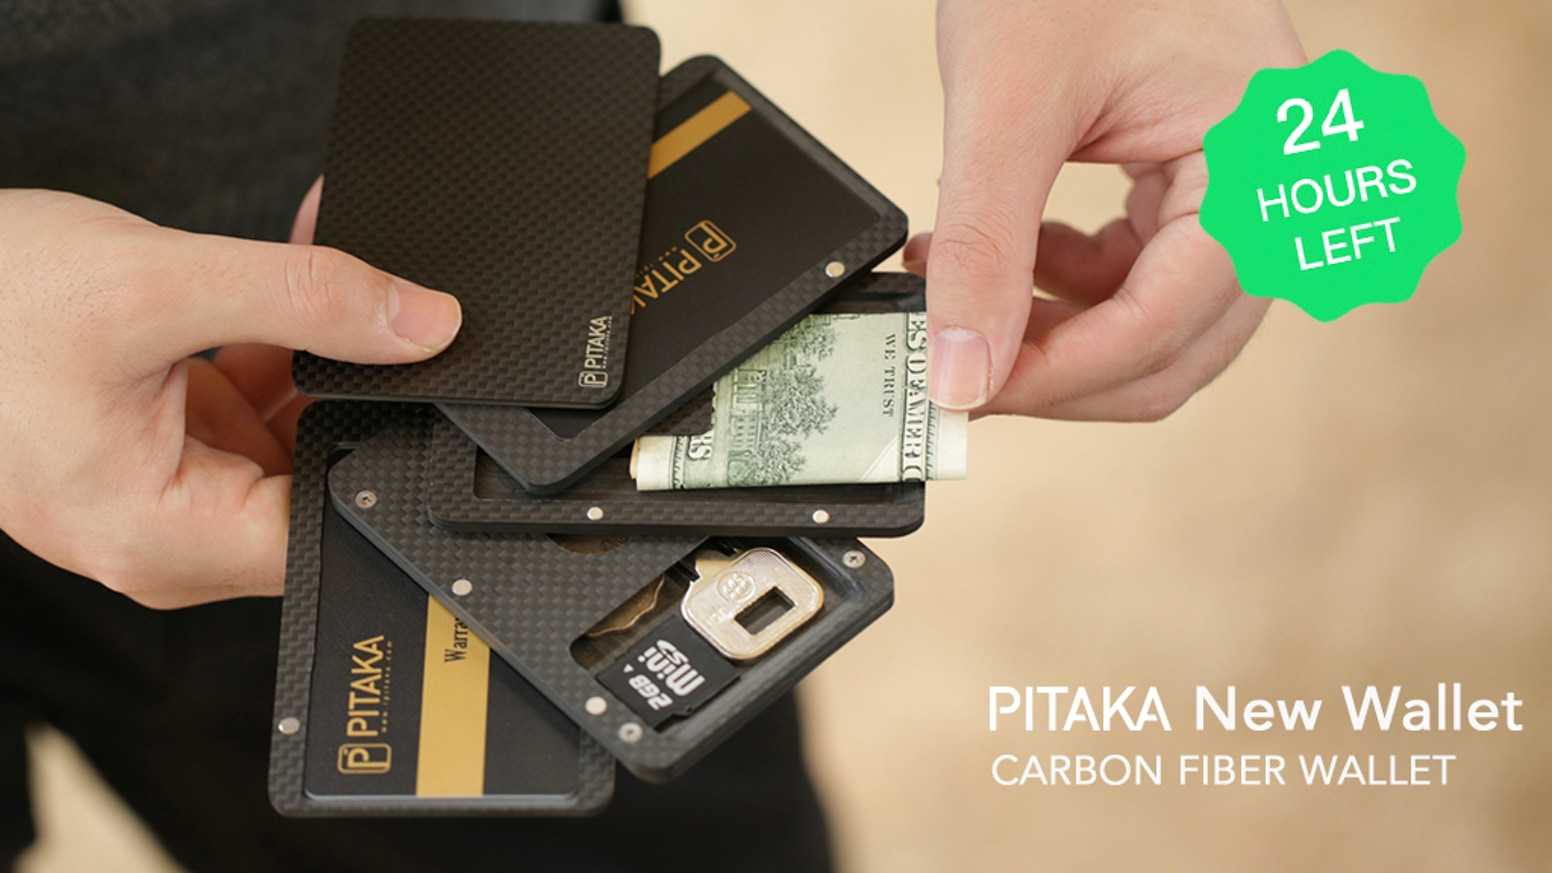 Modular, Magnetic-Stripe Friendly, & RFID-Blocking. The PITAKA New Wallet keeps all your daily essentials secure and in a quick flick.